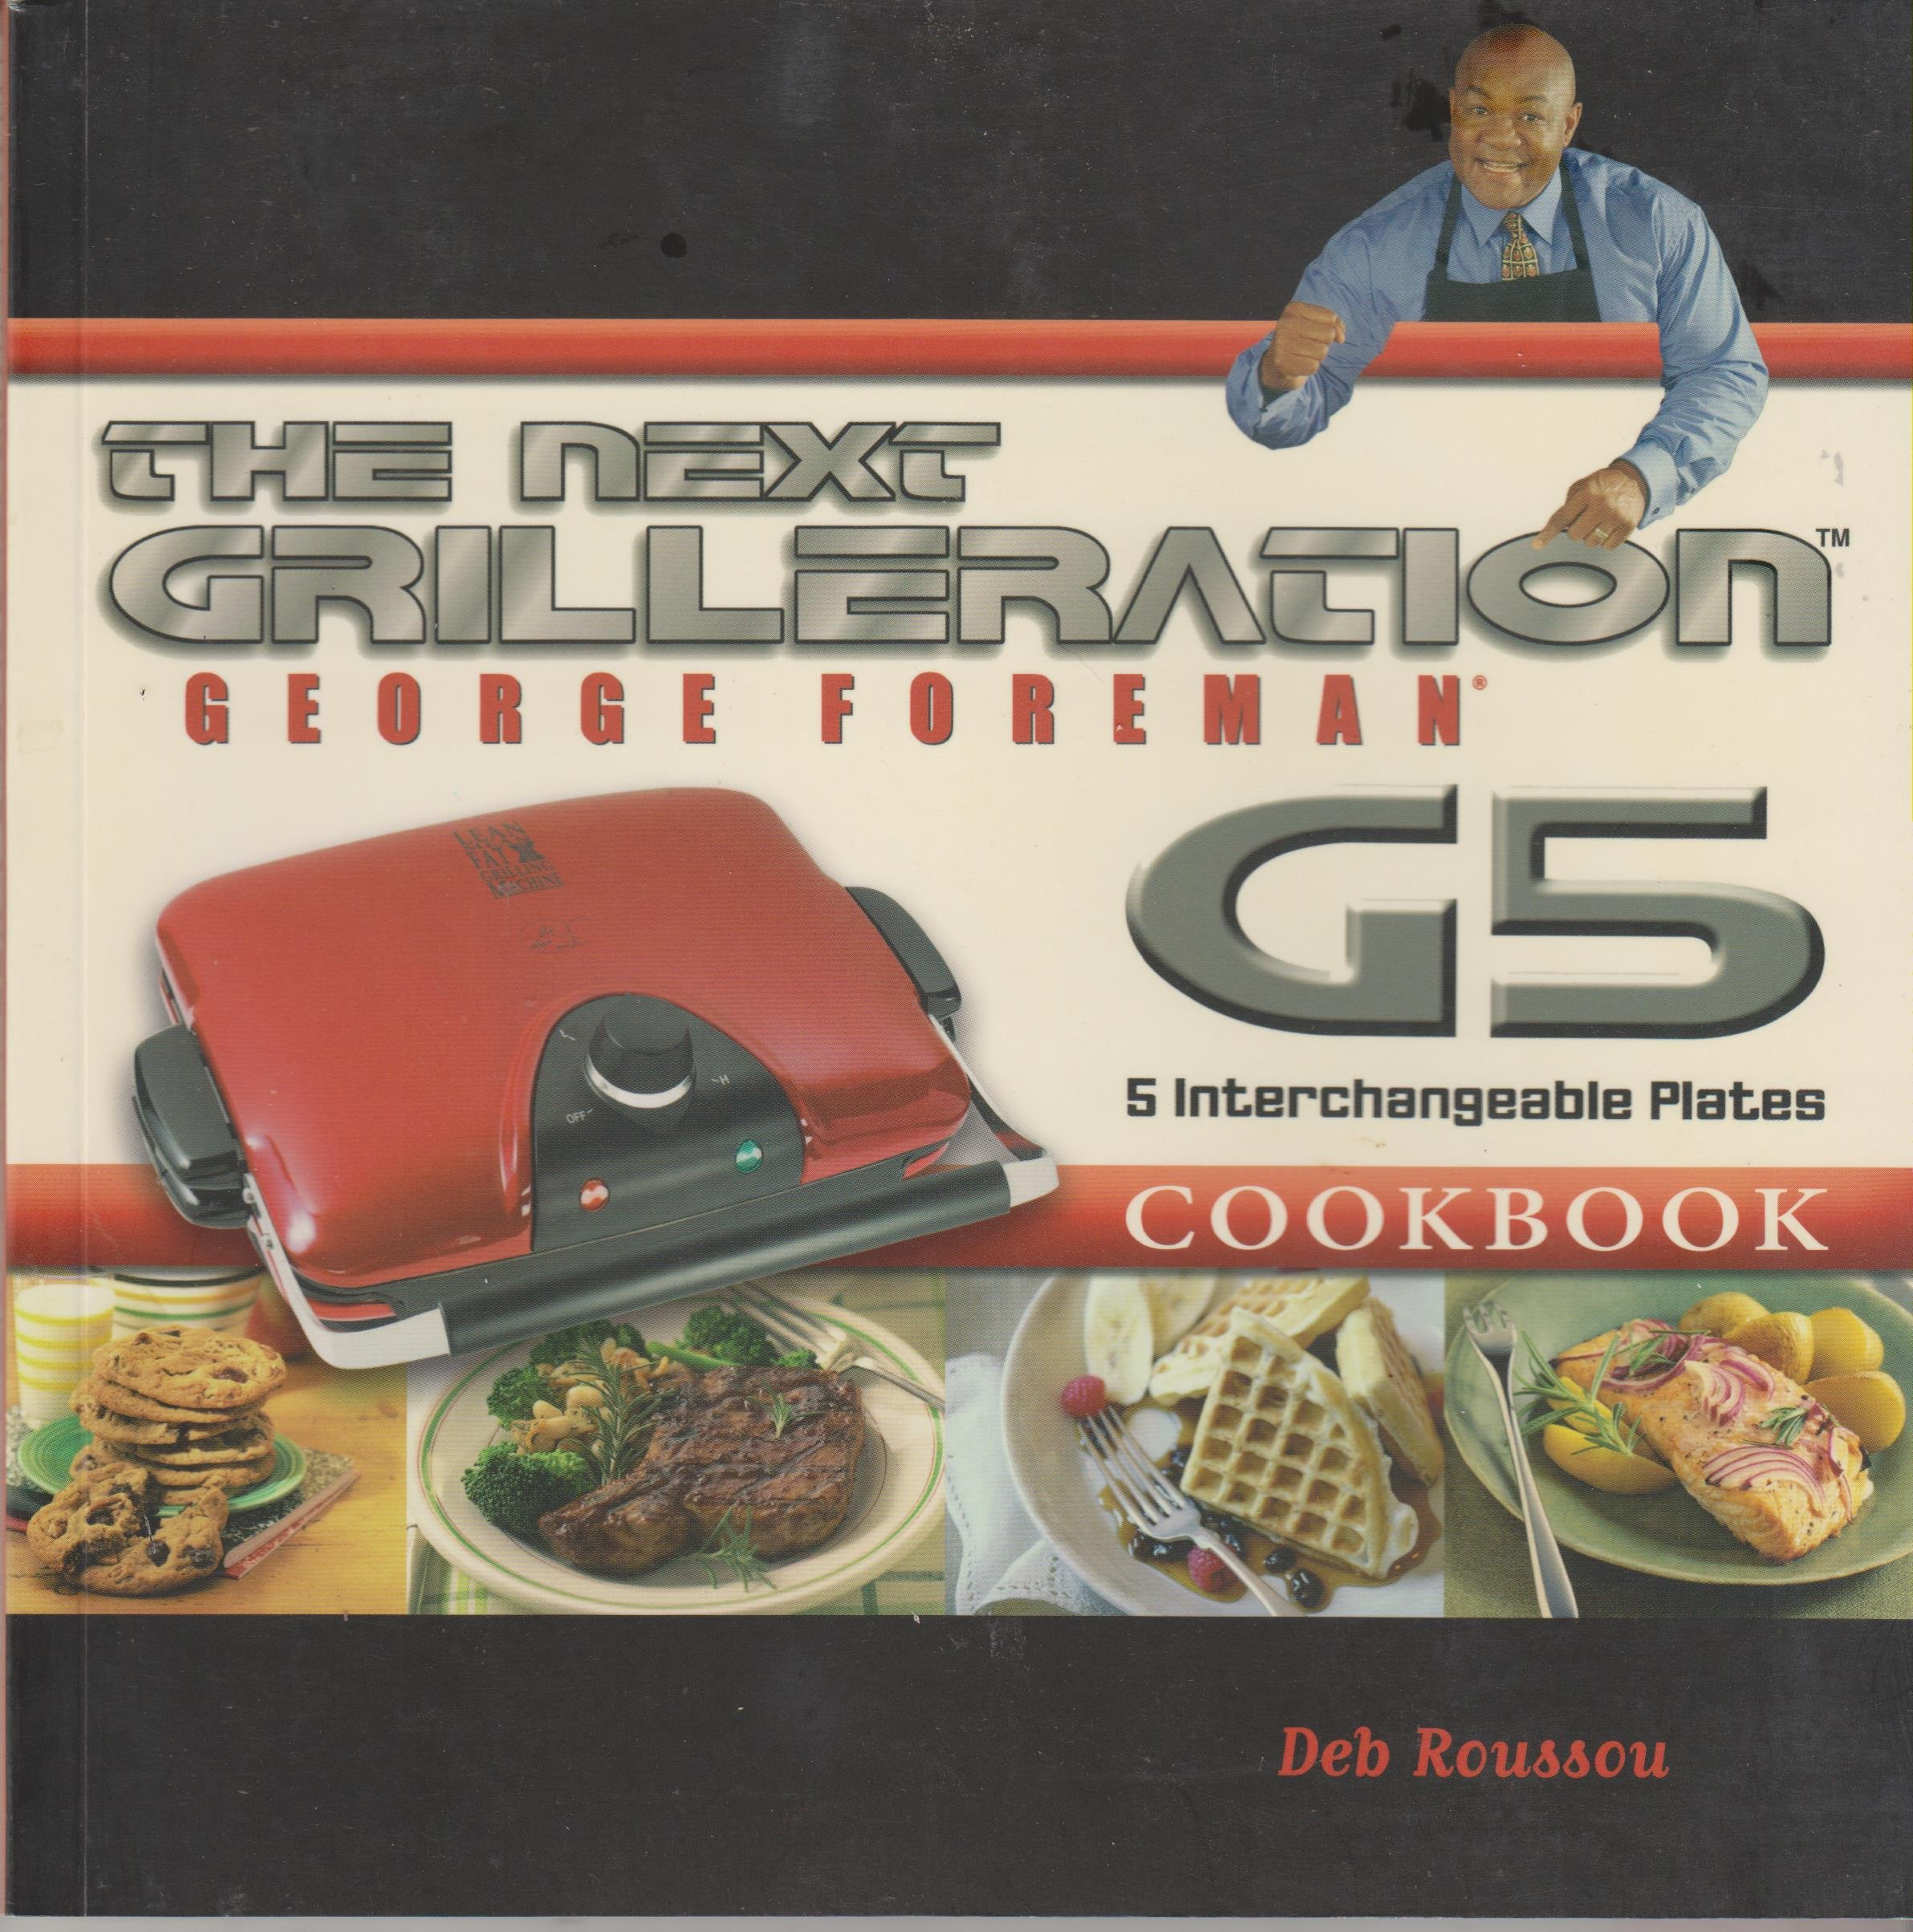 The george foreman next grilleration g5 cookbook inviting george the george foreman next grilleration g5 cookbook inviting george foreman deb roussou 9781929862511 amazon books fandeluxe Images